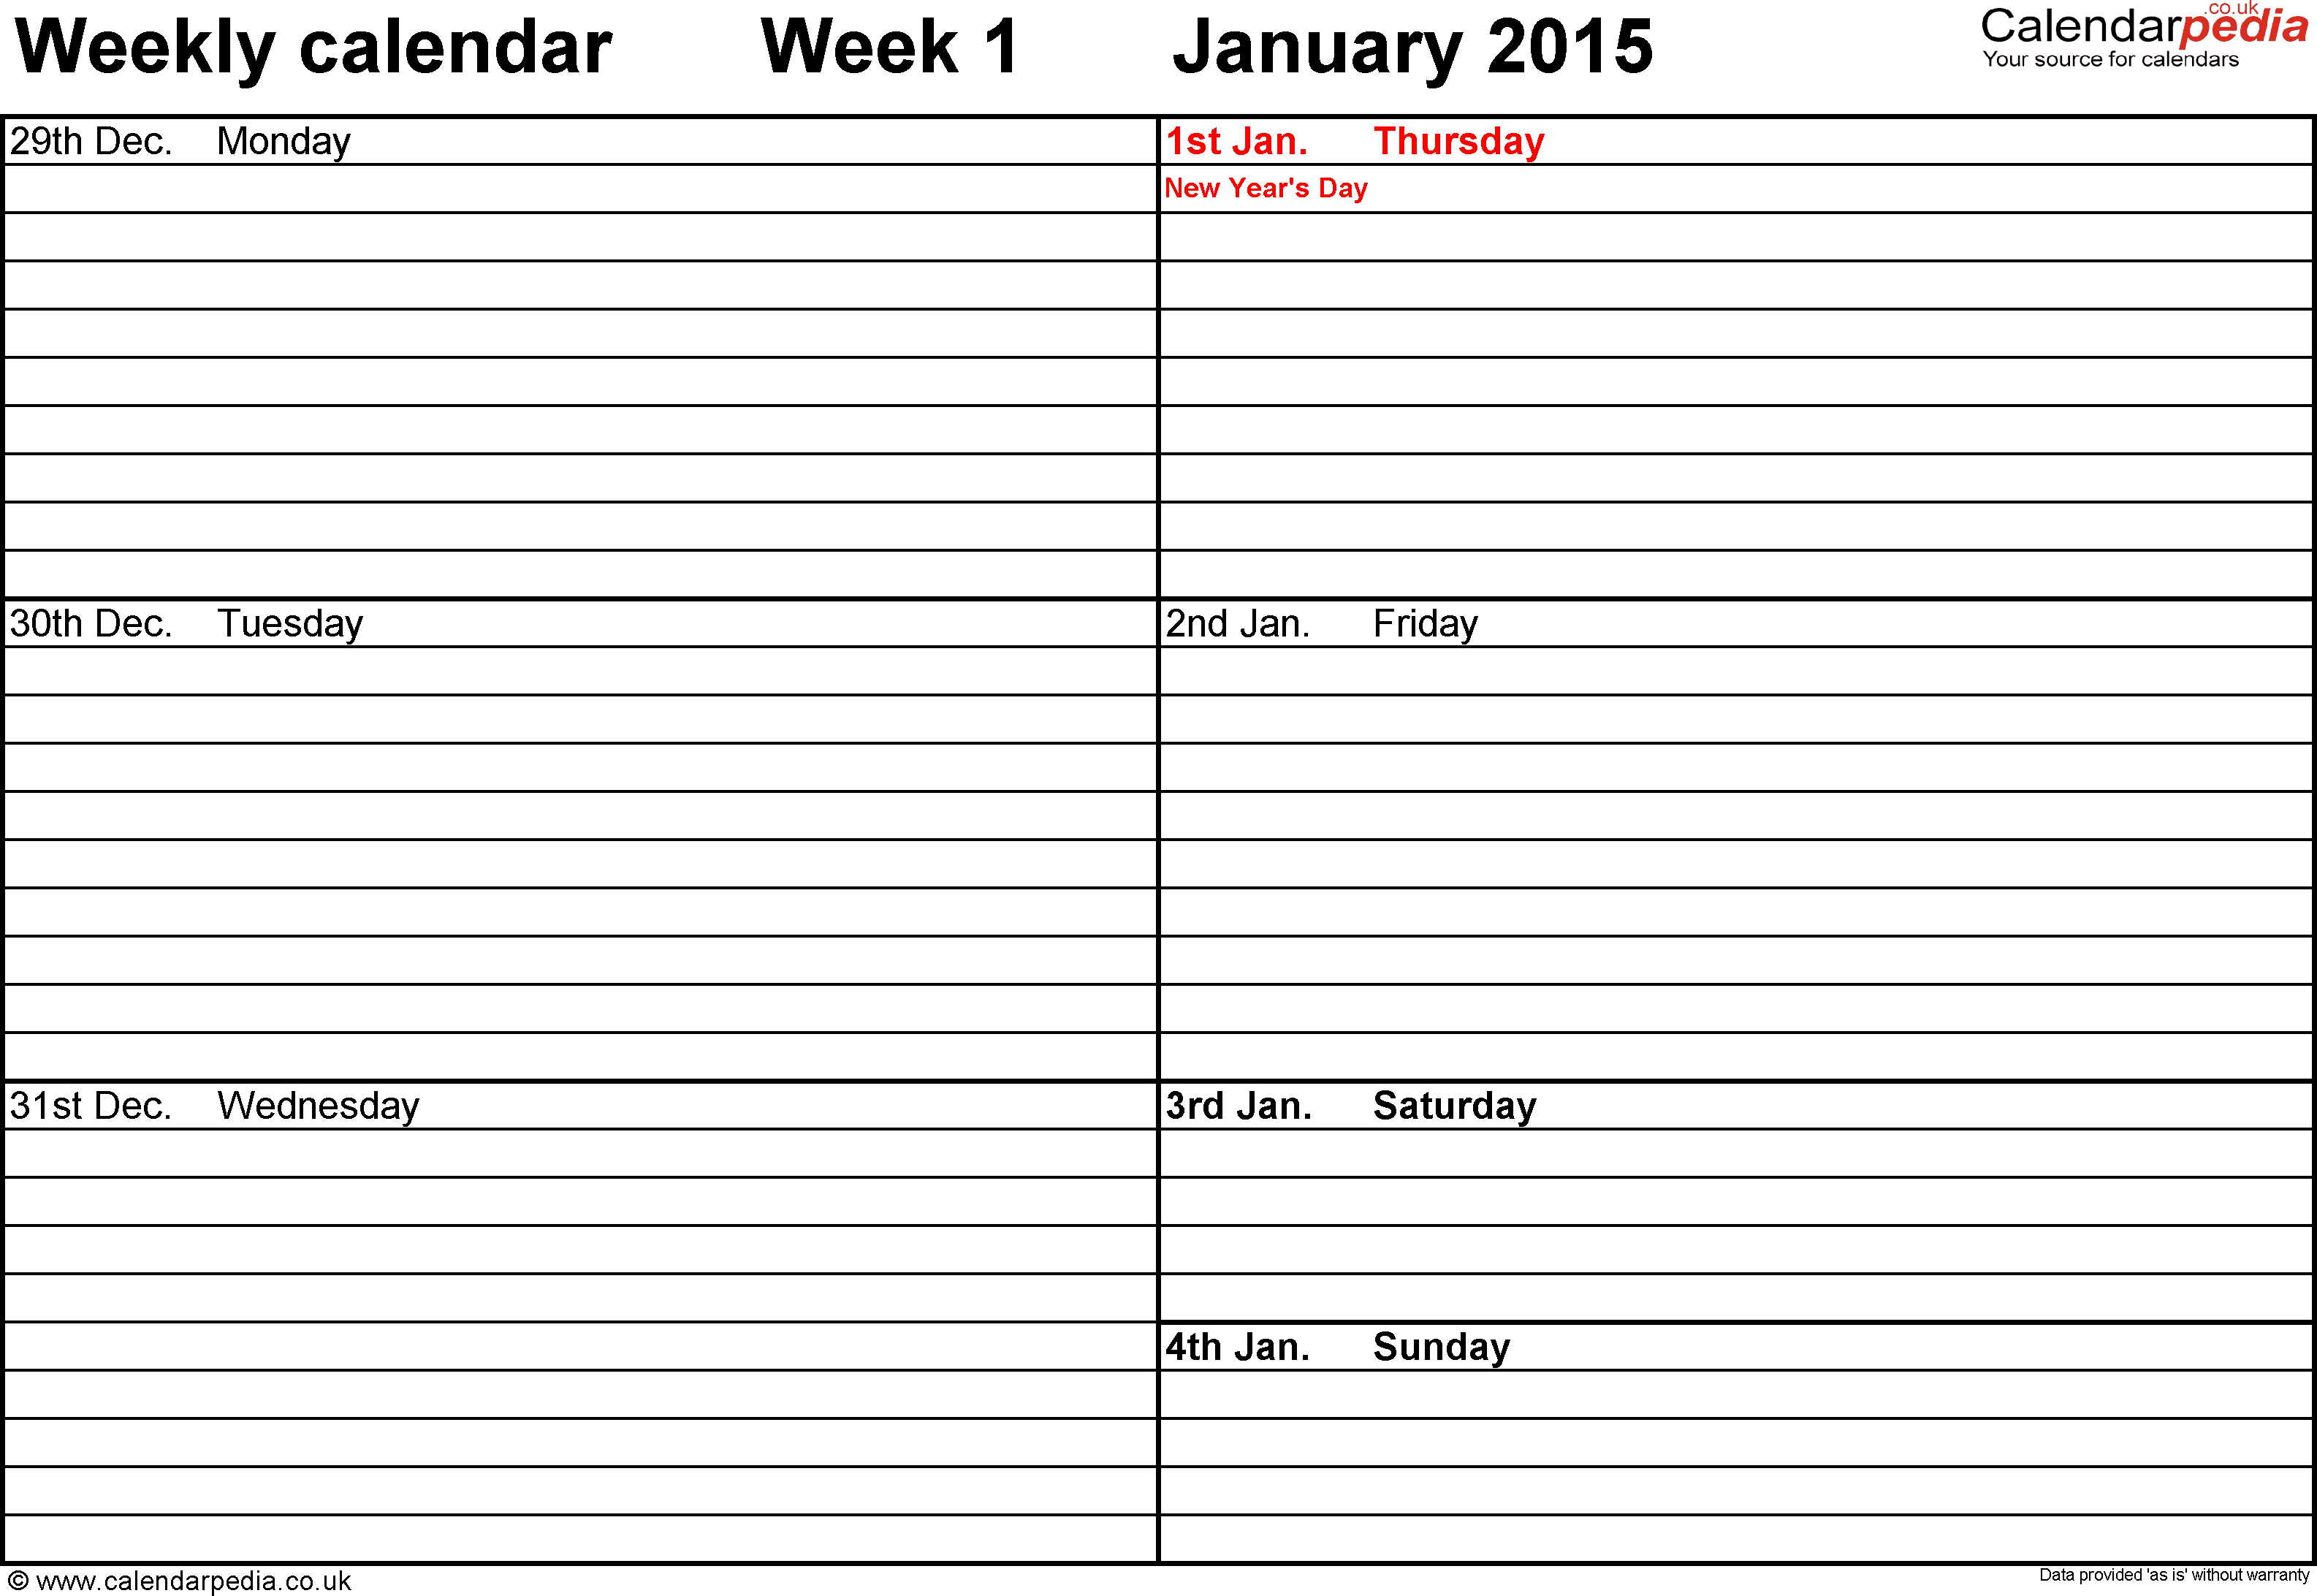 Weekly calendar 2015 UK free printable templates for Word – Word Calendar Sample